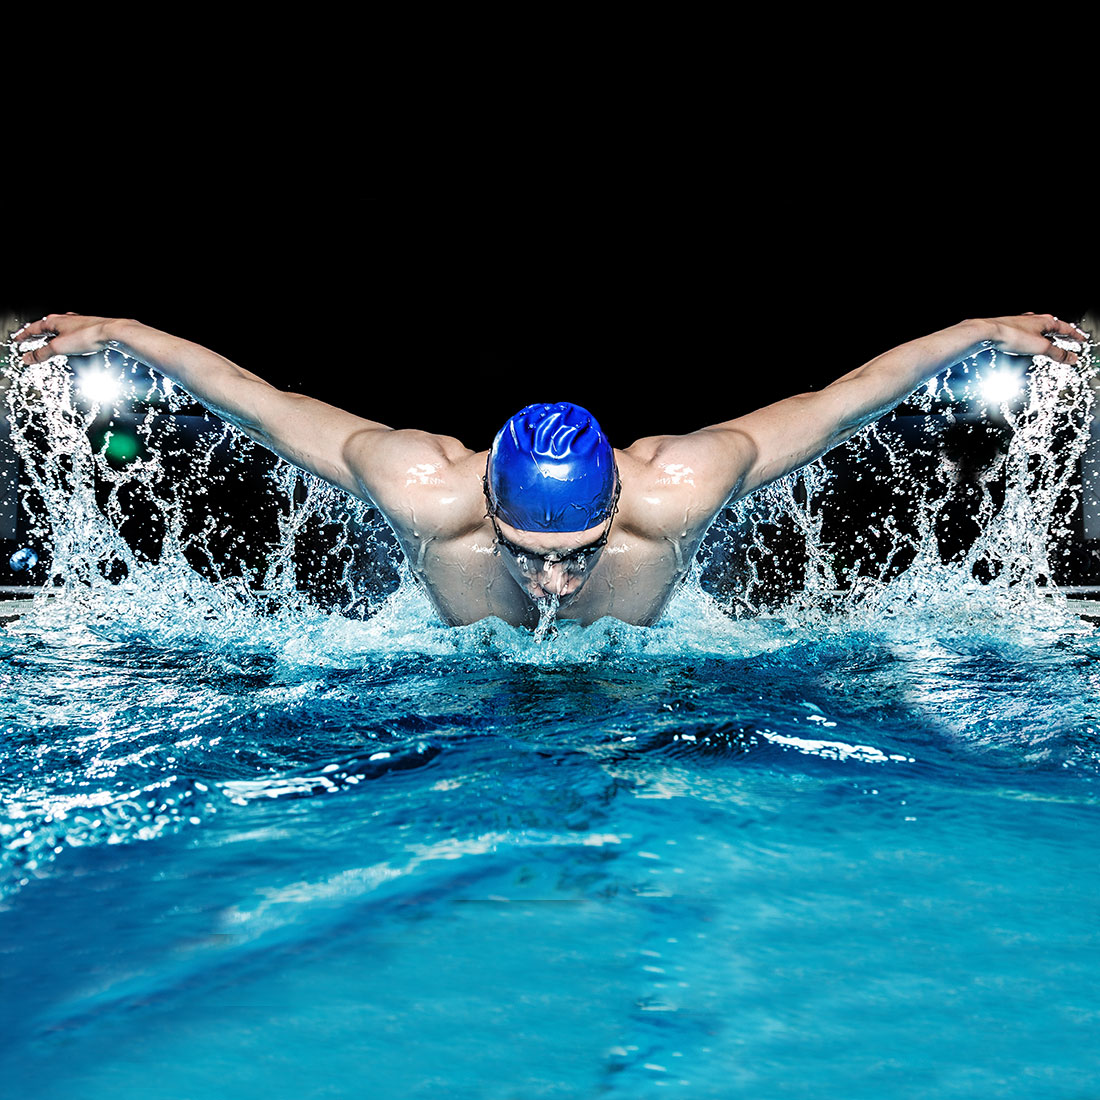 Swimming the butterfly stroke